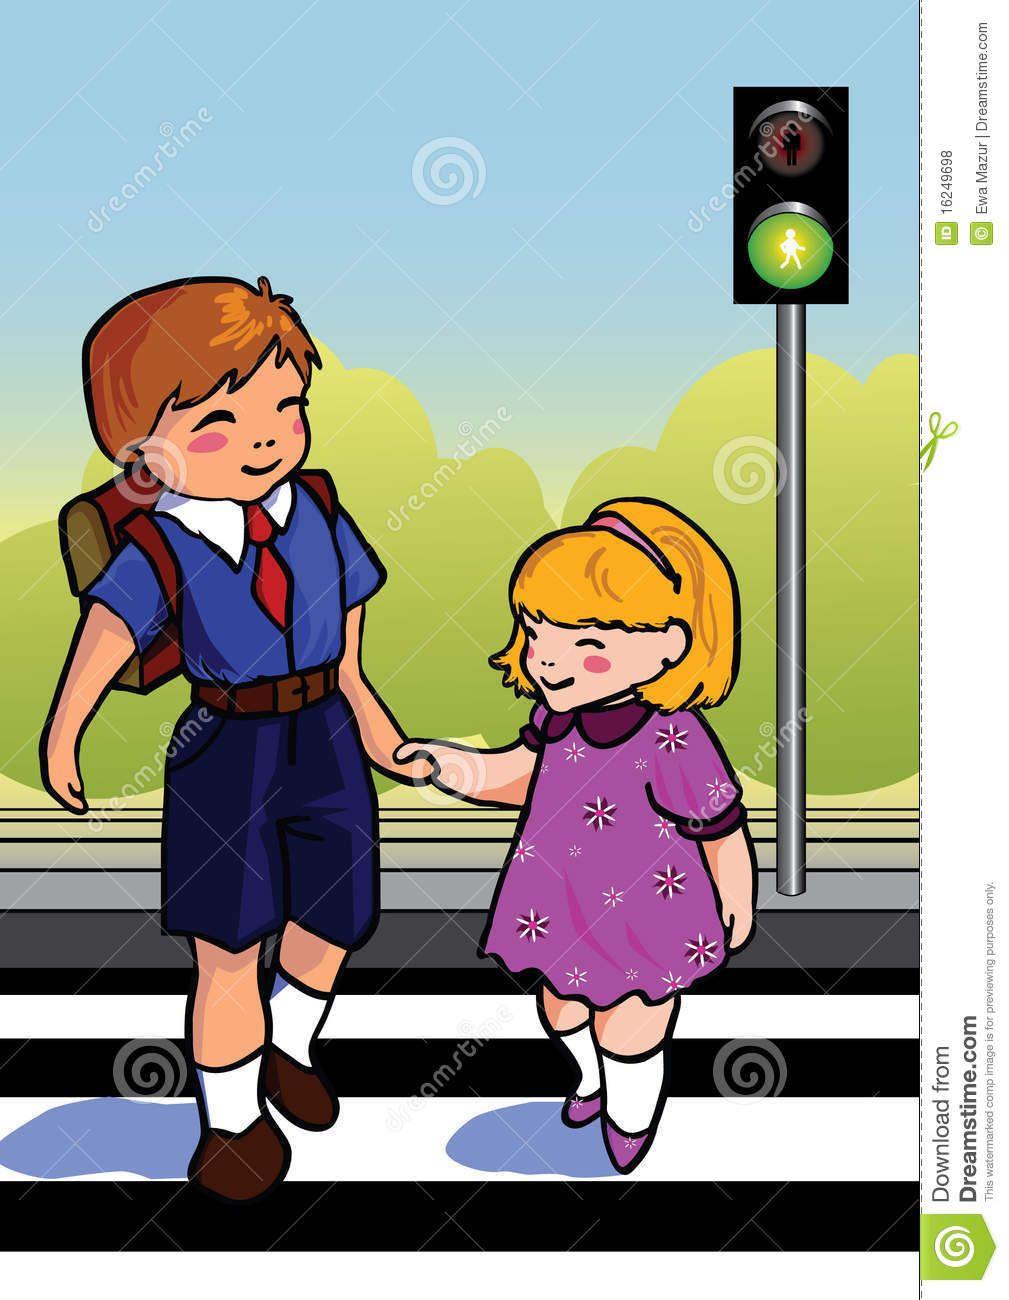 children crossing street royalty free stock photos image 16249698 High School Graduation Clip Art girl education clipart